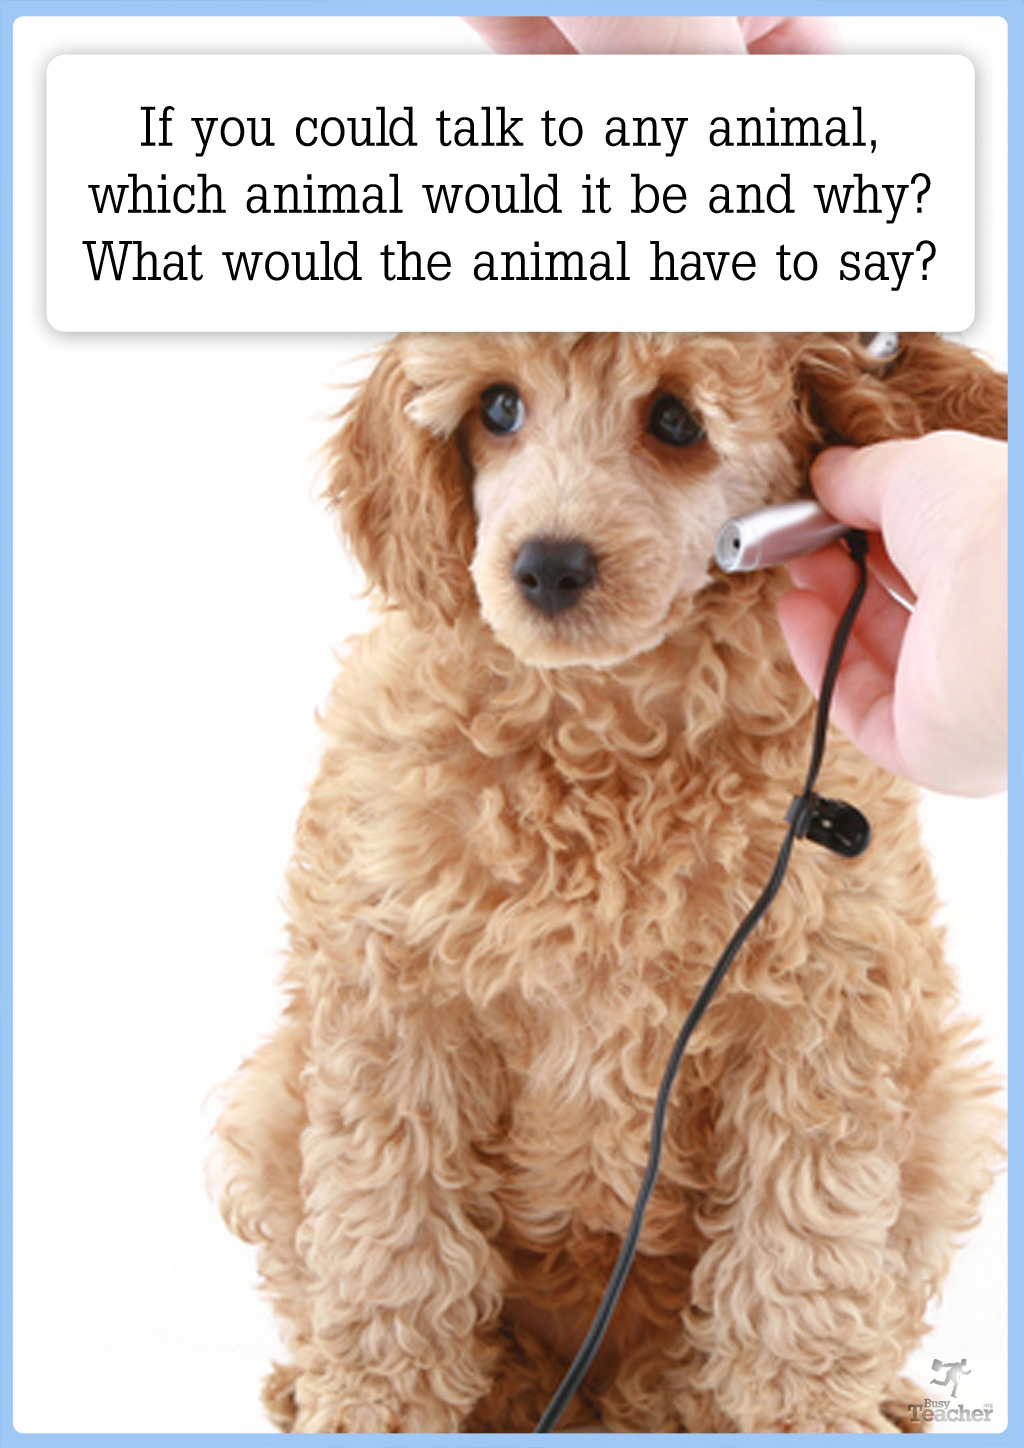 If You Could Talk To Any Animal Creative Writing Prompt